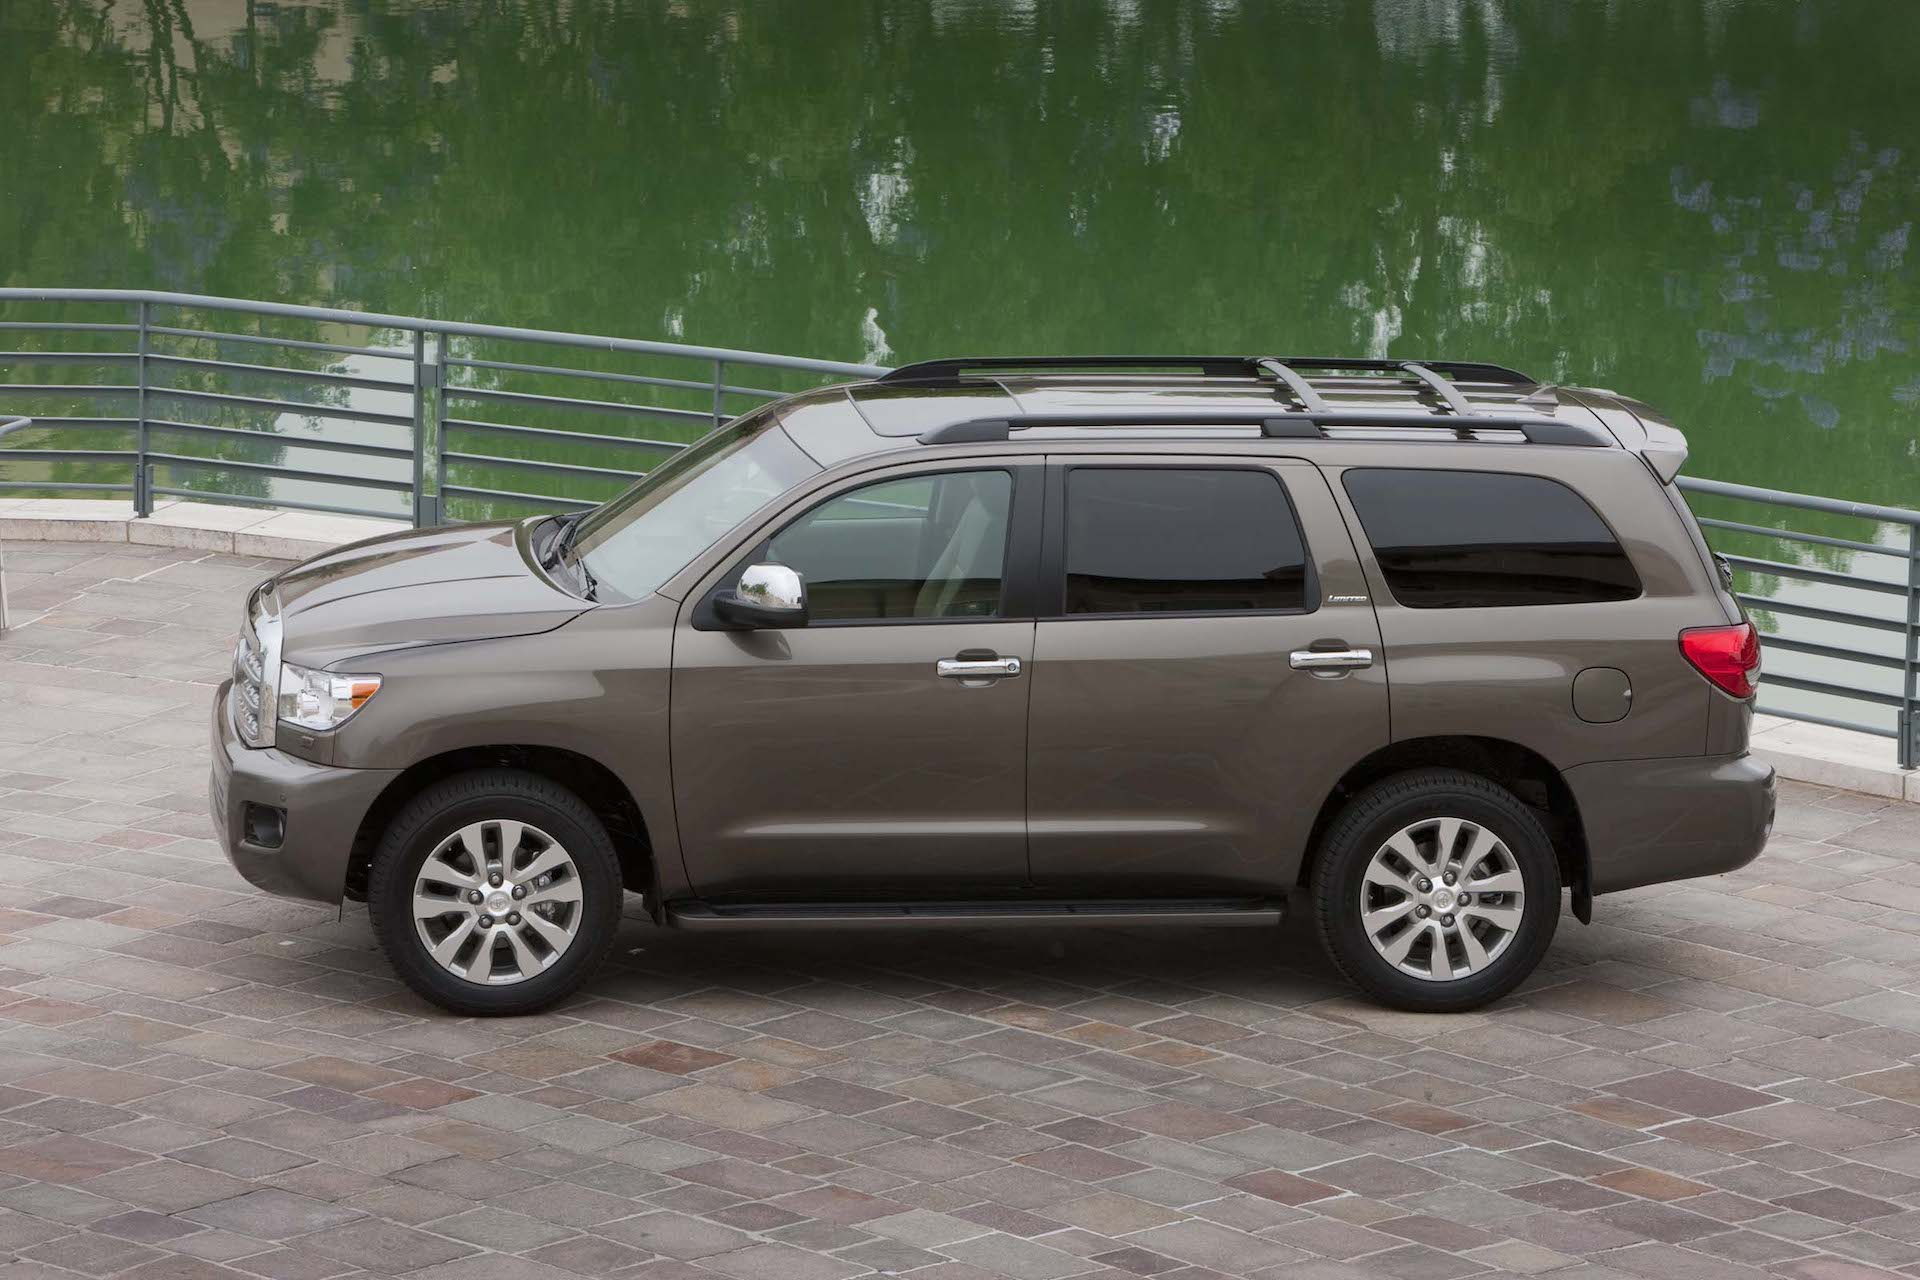 2015 Toyota Sequoia Quality Review The Car Connection